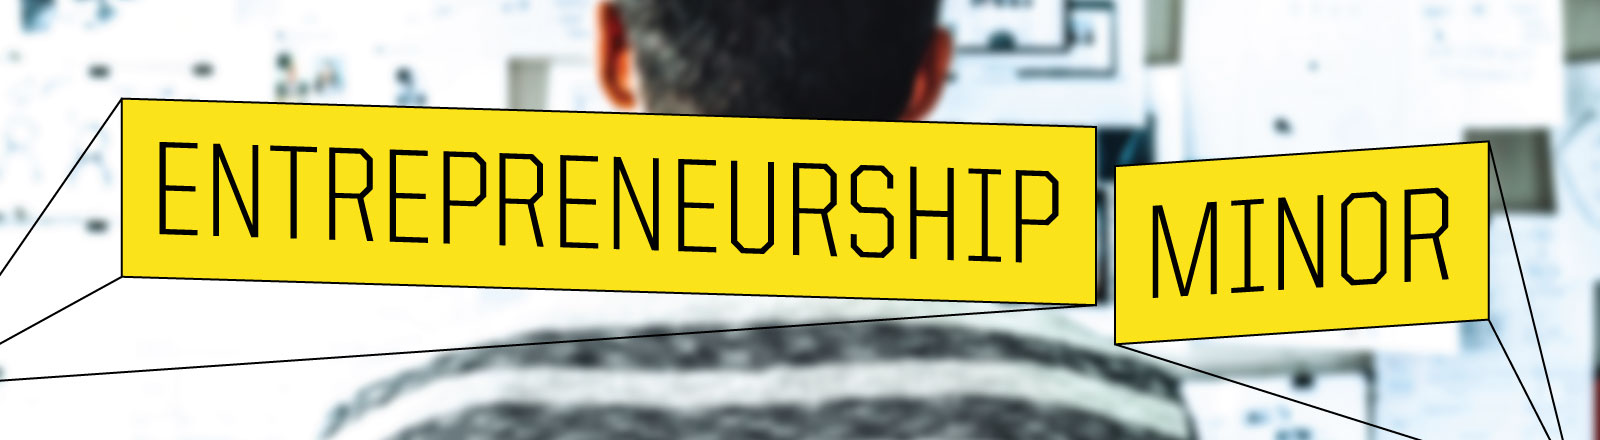 """Illustration graphic with the word """"Entrepreneurship Minor"""" in yellow blocks appearig as if 3D"""